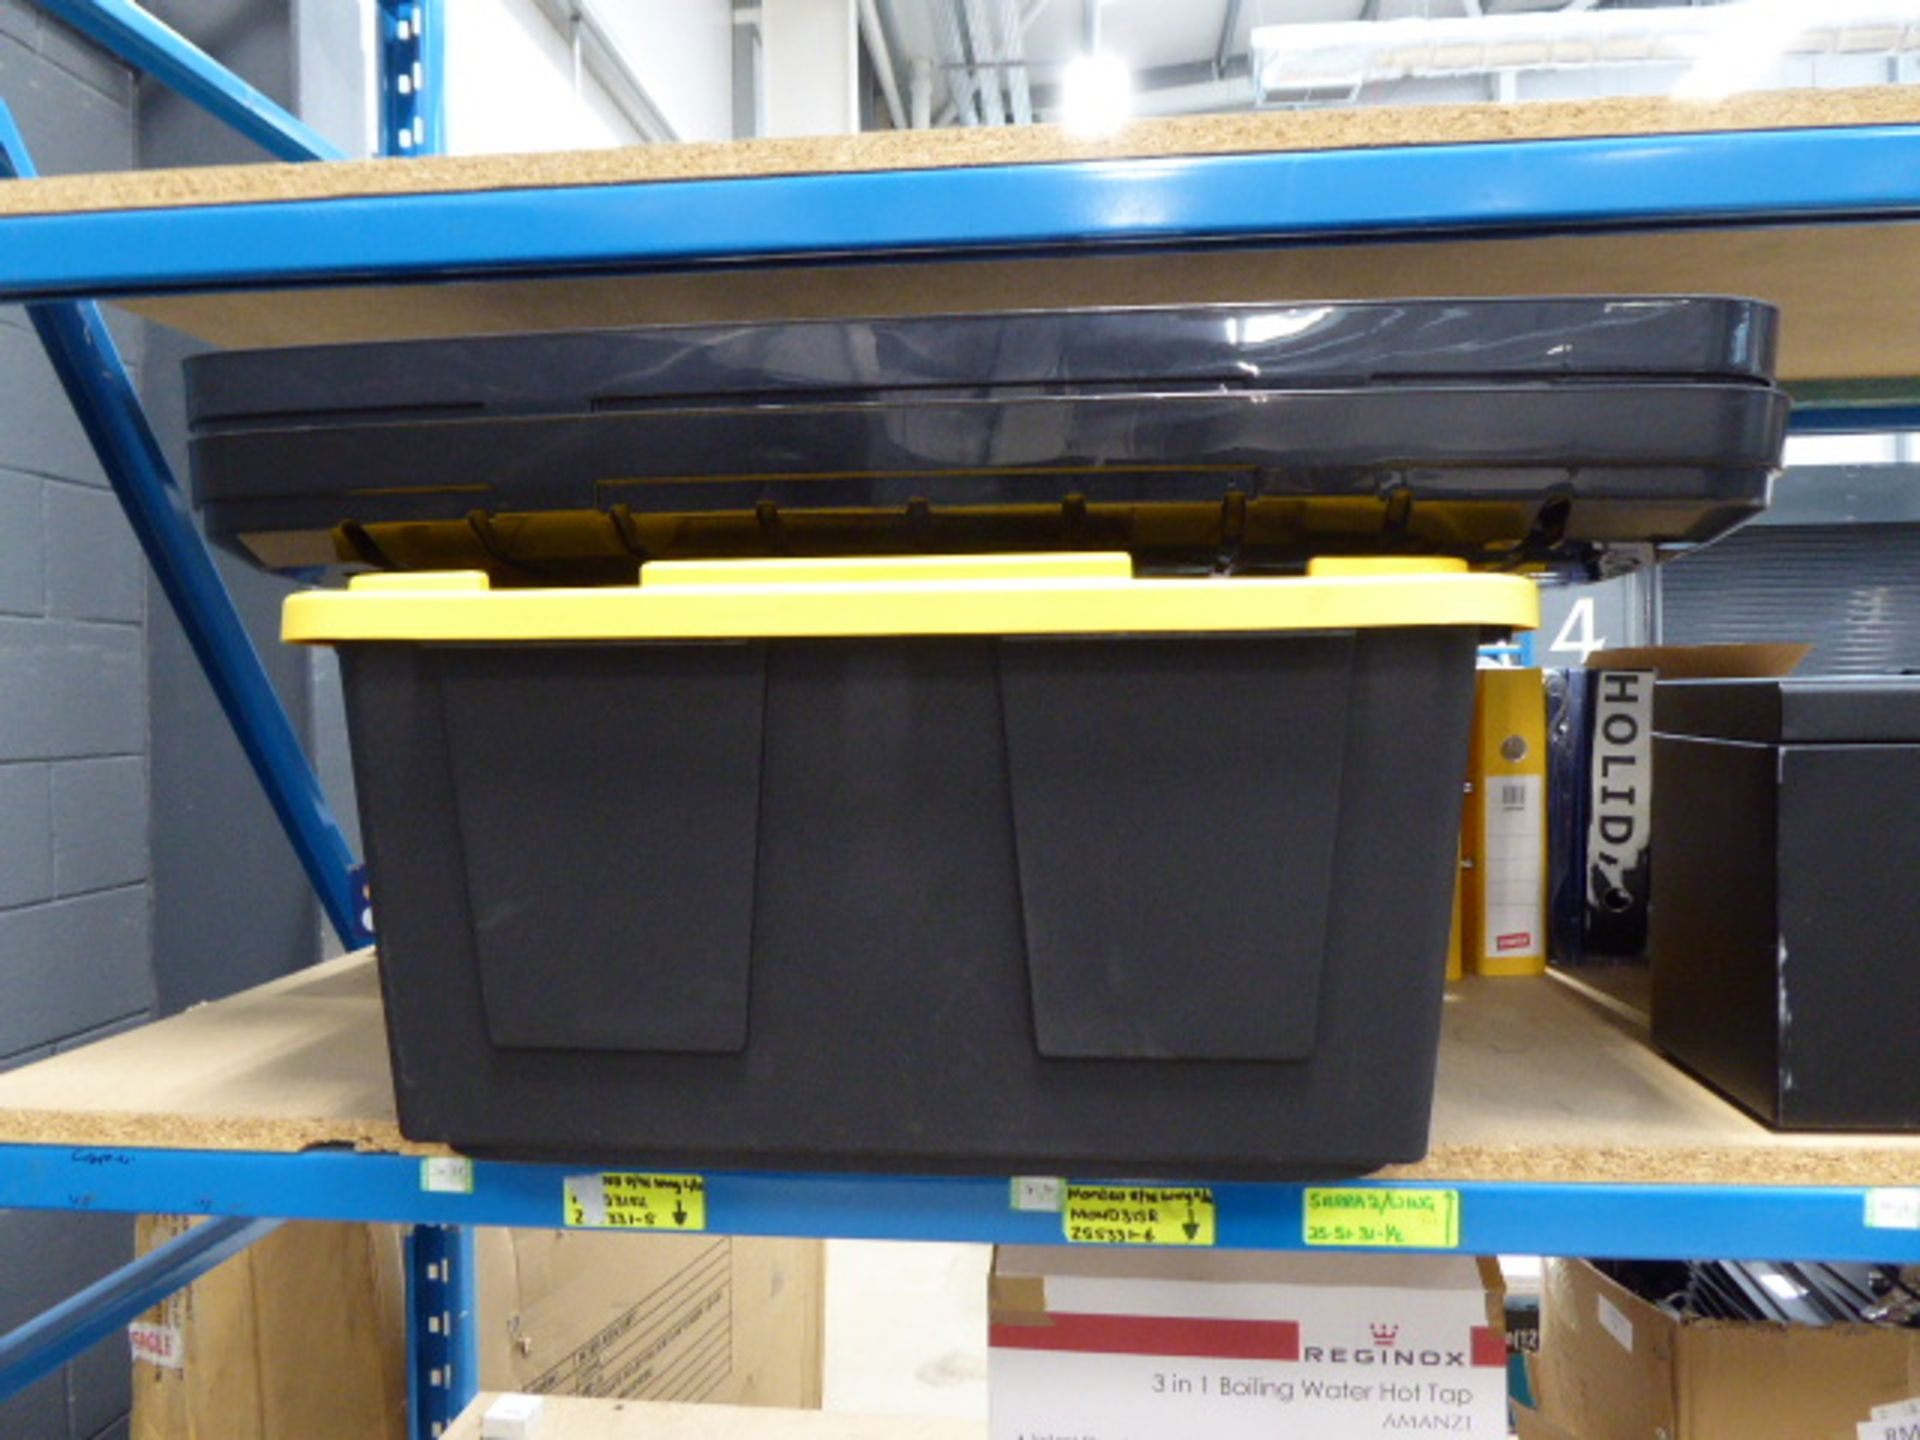 Shelf of assorted storage boxes - Image 4 of 4